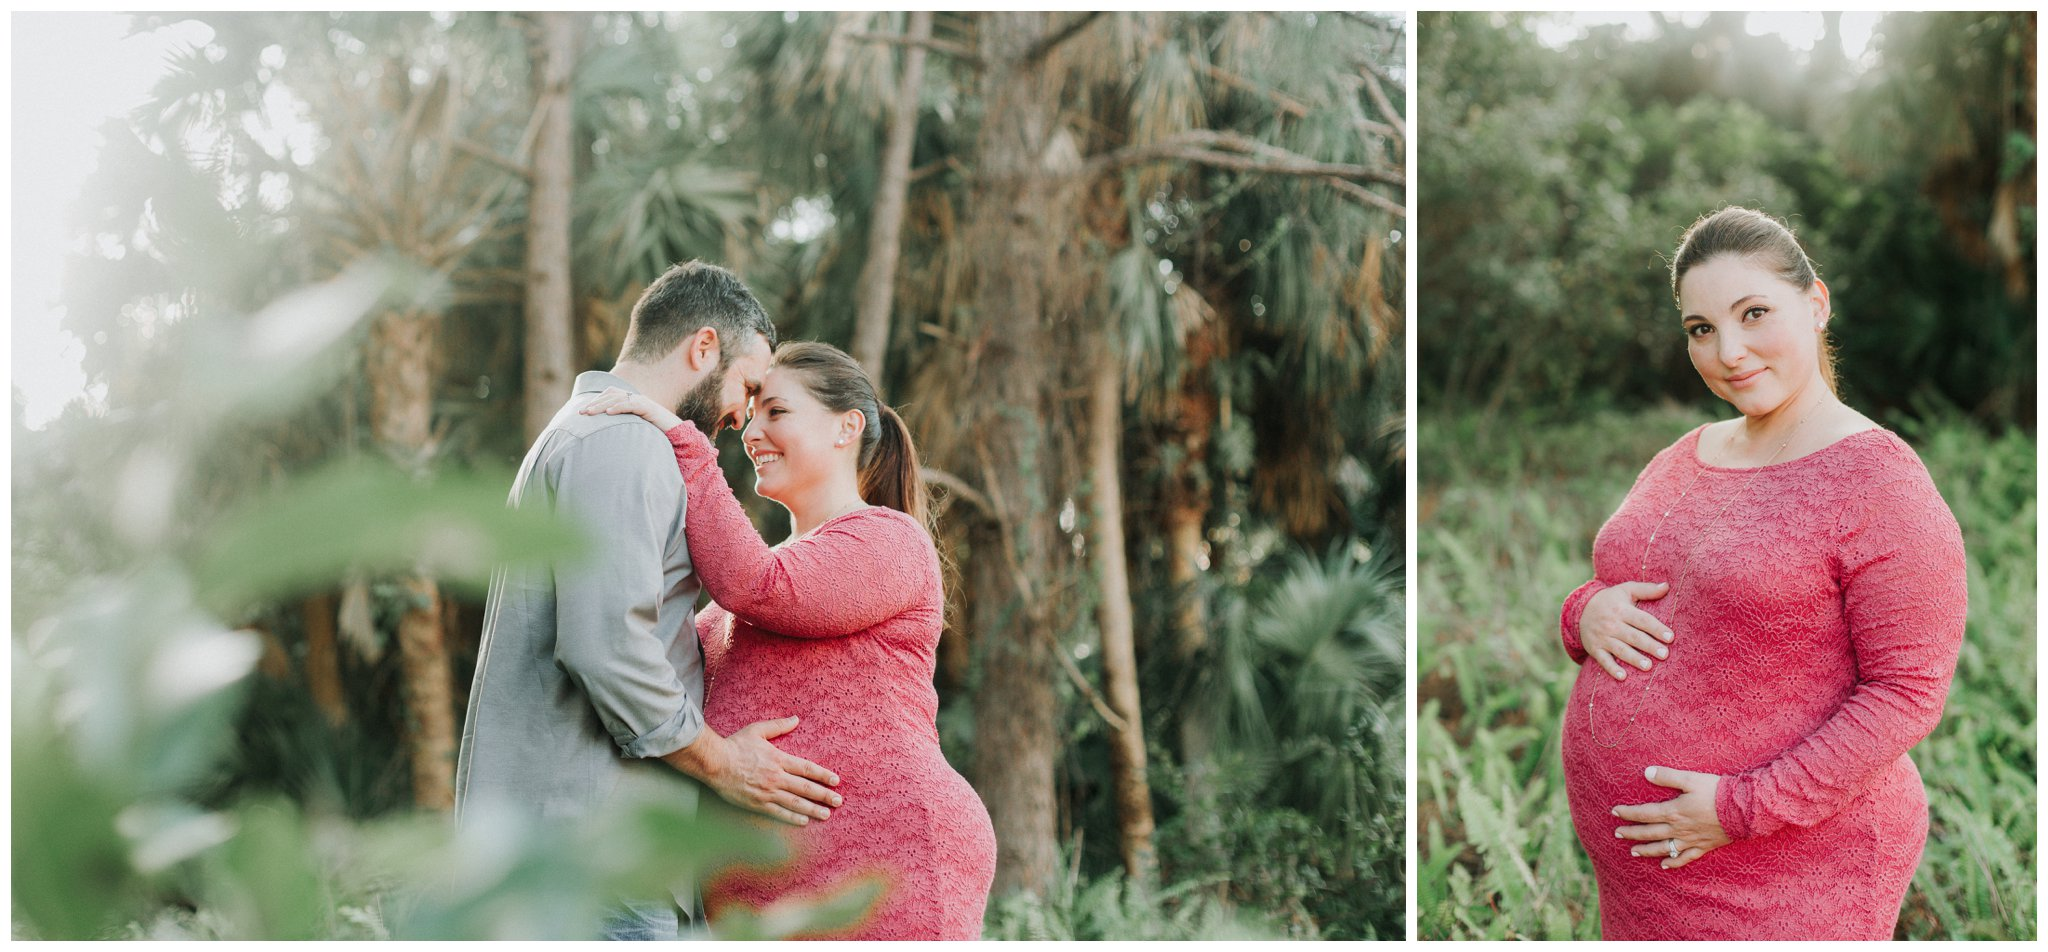 Kimberly Smith Photography- Sugar Sand Park- Sugar Sand Park Maternity Photos- Boca Raton Photographer- Palm Beach Photographer- Jupiter Photographer- Stuart Florida Photographer_0010.jpg